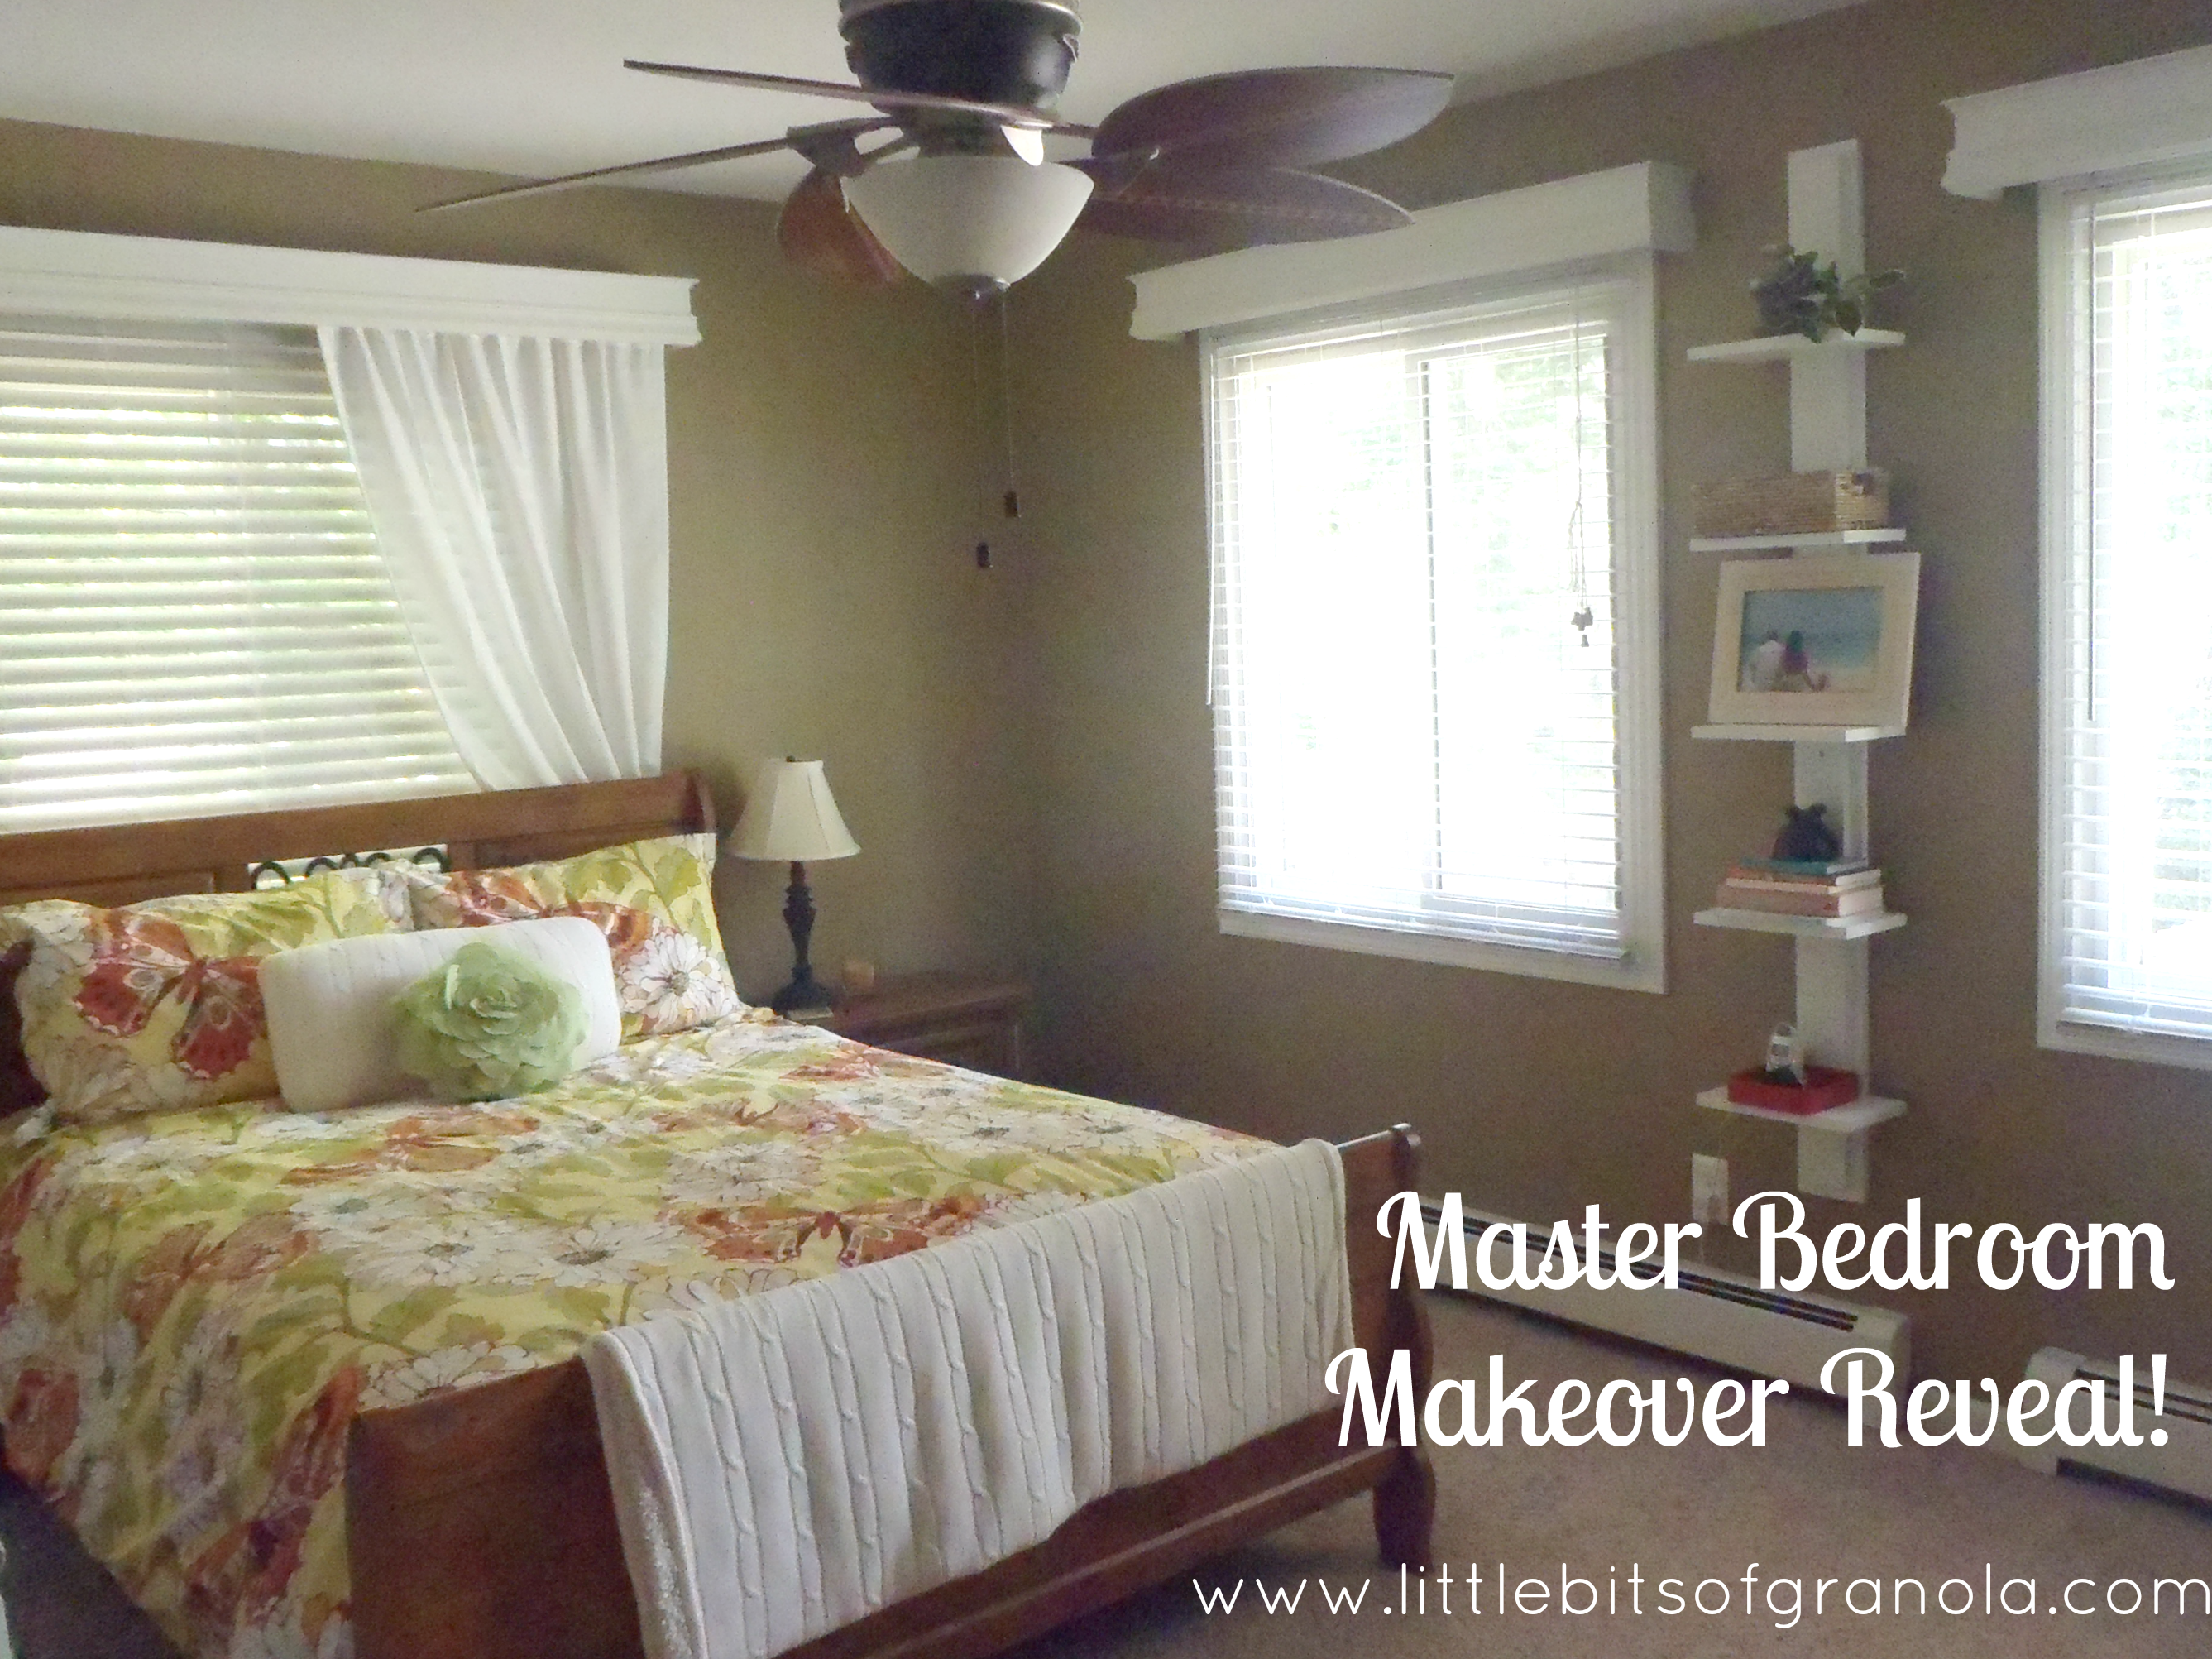 bedroom furniture makeover. Master Bedroom Makeover Reveal - By Little Bits Of Granola Furniture